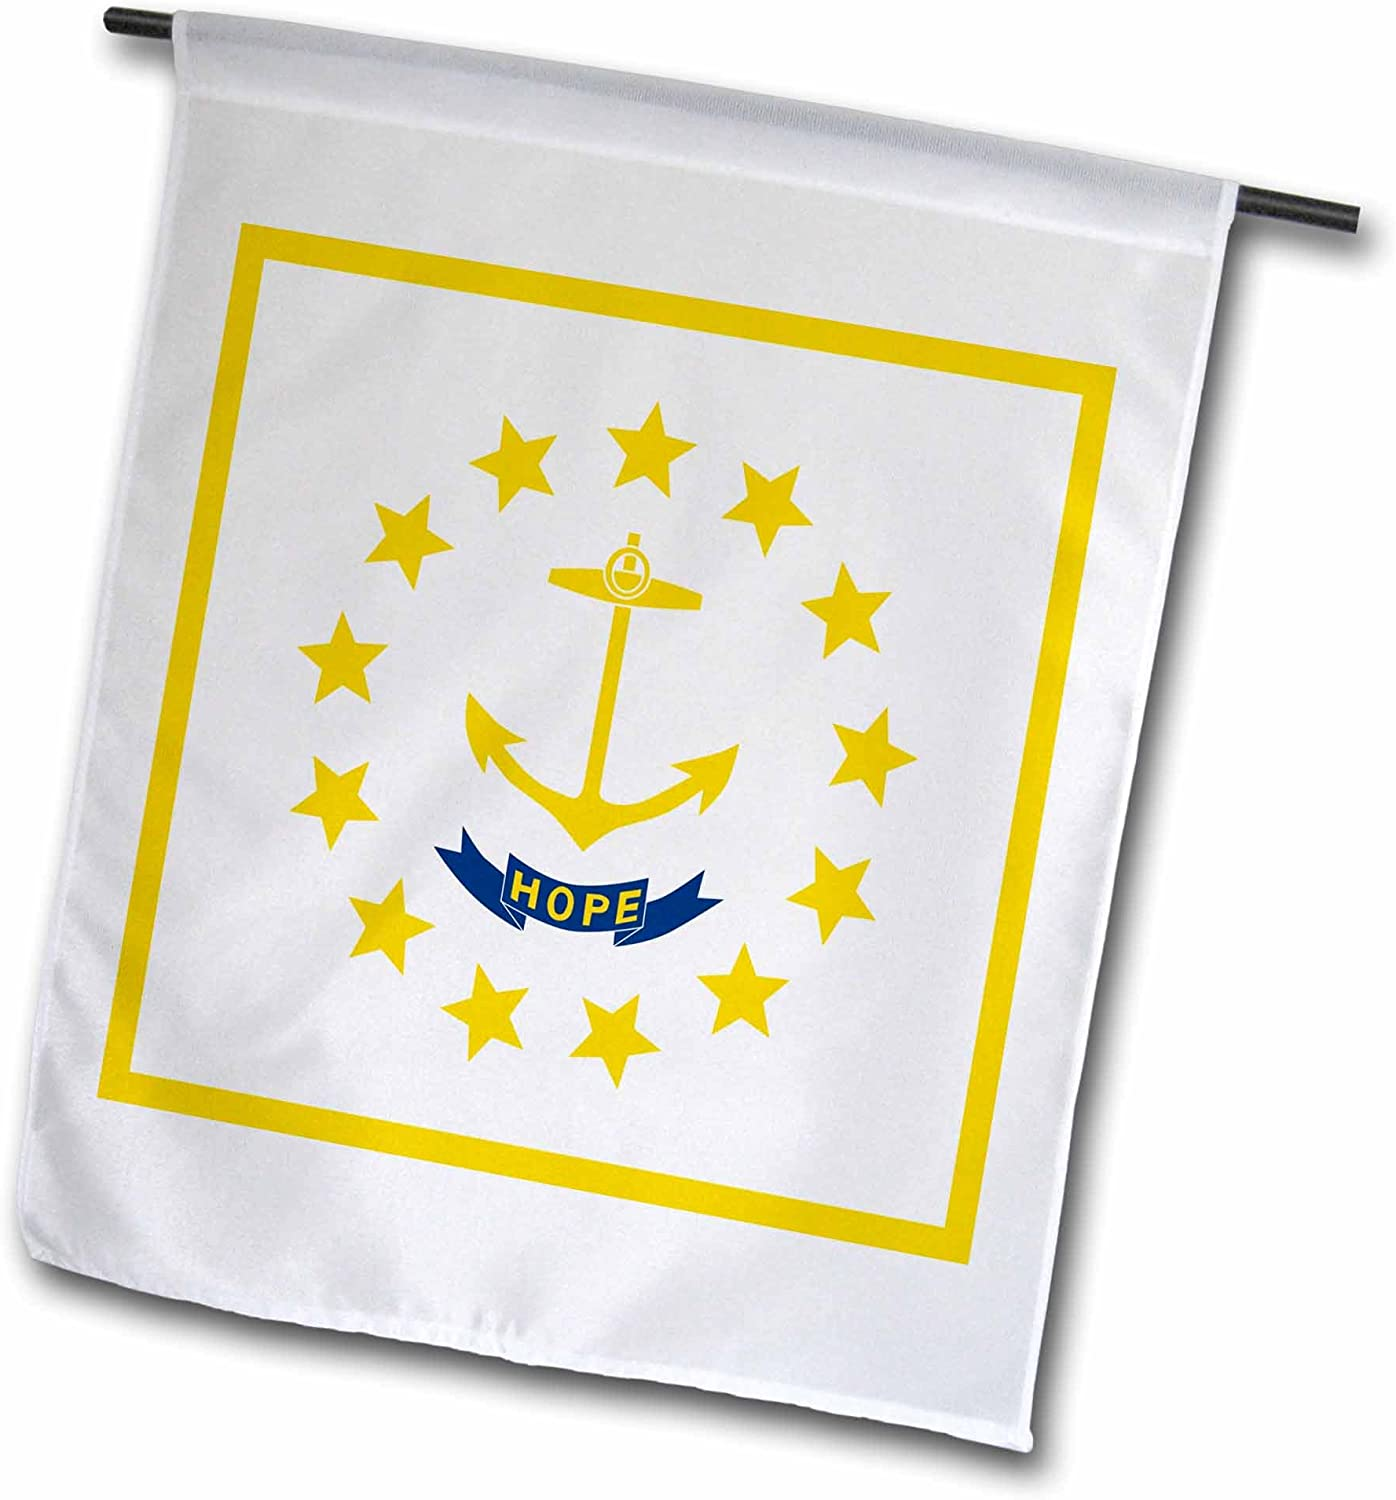 3dRose fl_158416_1 Flag of Rhode Island RI US American United State of America USA Yellow Anchor Hope on White Garden Flag, 12 by 18-Inch